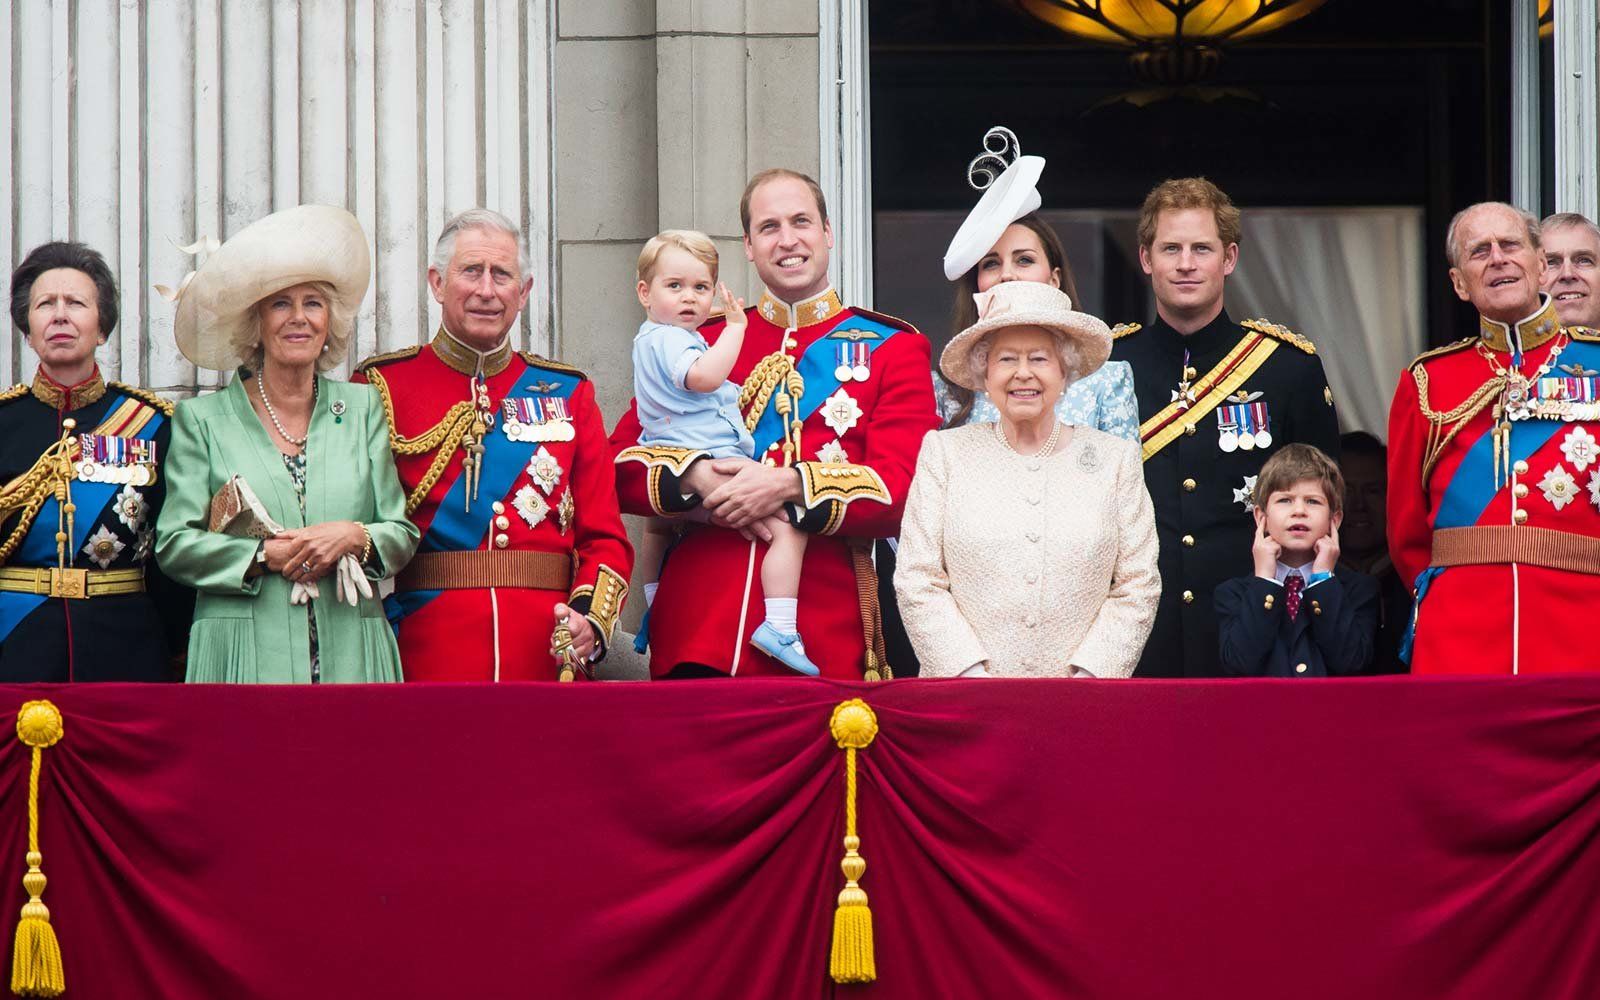 Princess Anne, Princess Royal, Camilla, Duchess of Cornwall, Prince Charles, Prince of Wales, Prince George of Cambridge, Prince William, Duke of Cambridge Catherine, Duchess of Cambridge, Queen Elizabeth II, Prince Harry